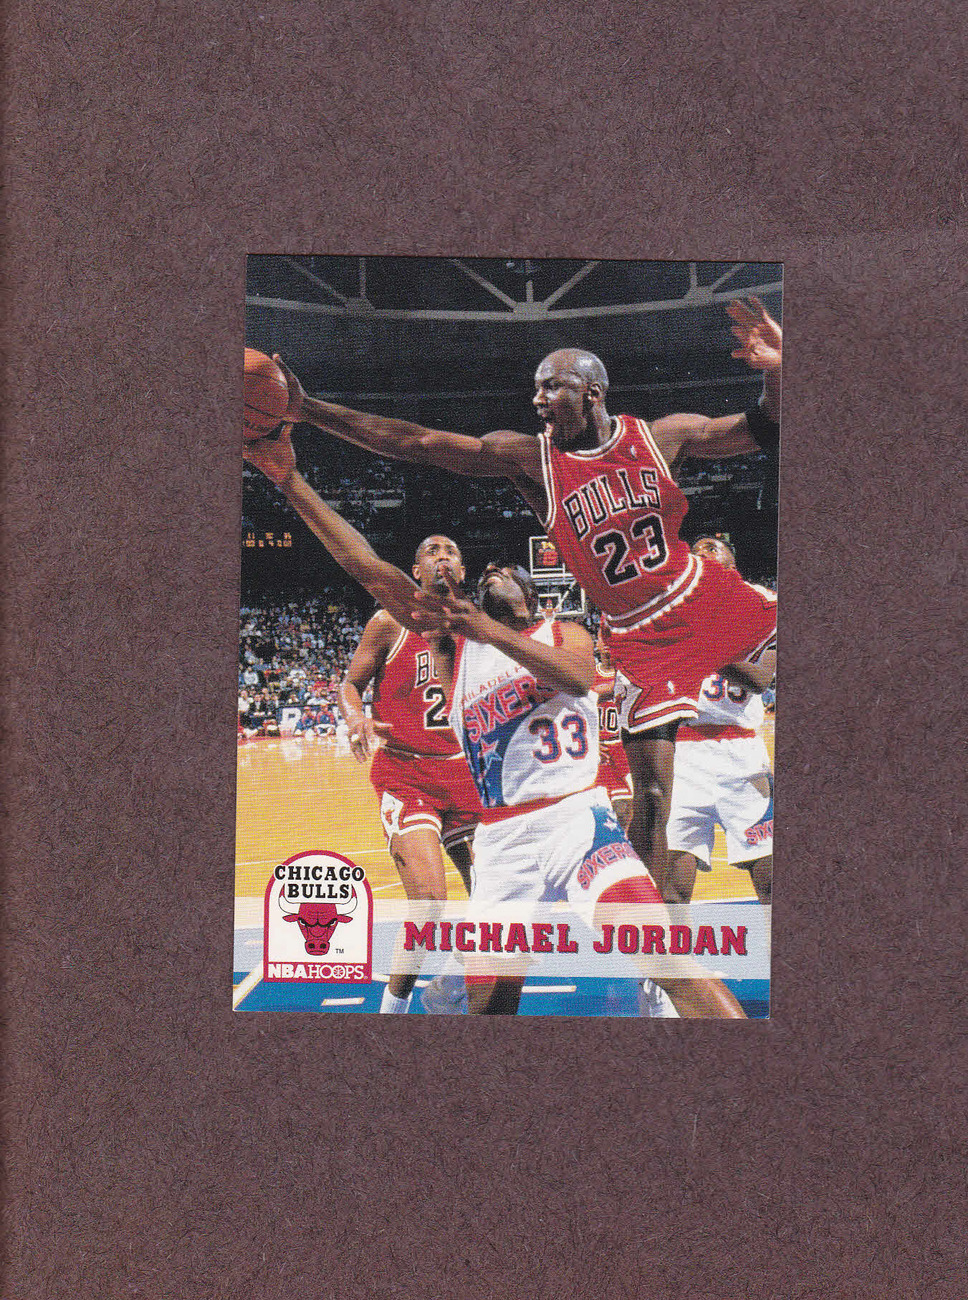 1993-94 Hoops # 28 Michael Jordan Chicago Bulls NM